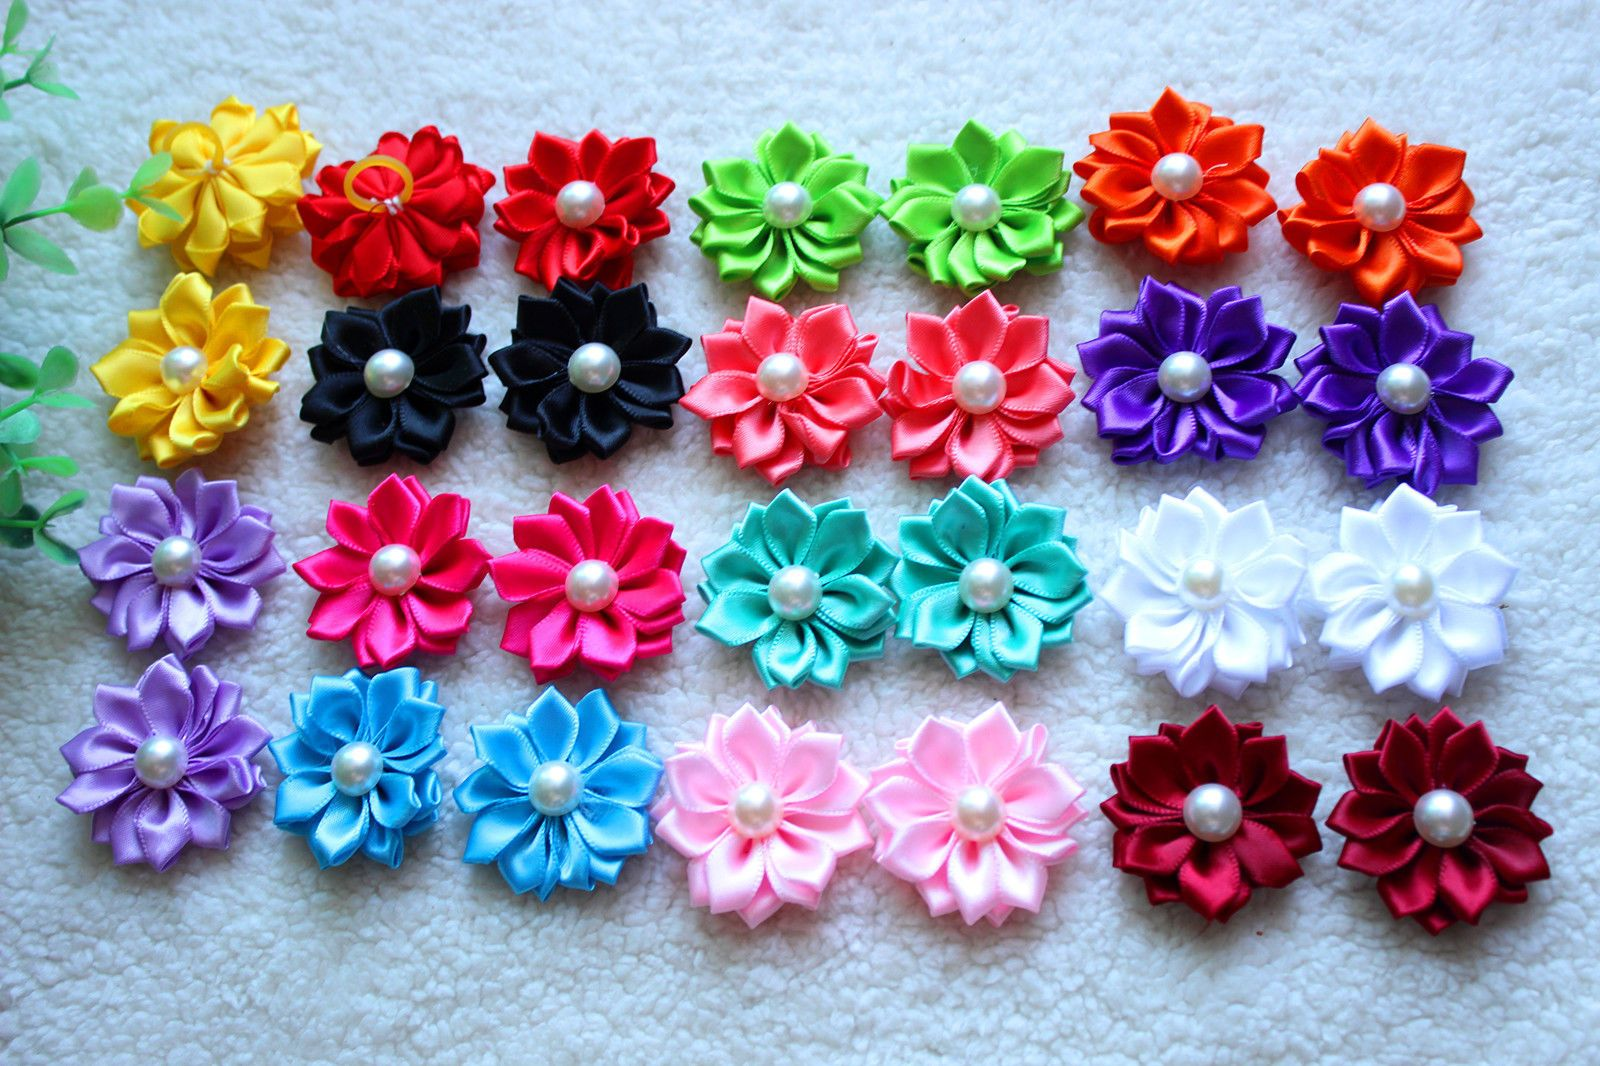 19ad0ee1b9488 $11.39 - 40Pcs Pet Dog Hair Bows Rubber Bands Flowers Pearls Pet ...